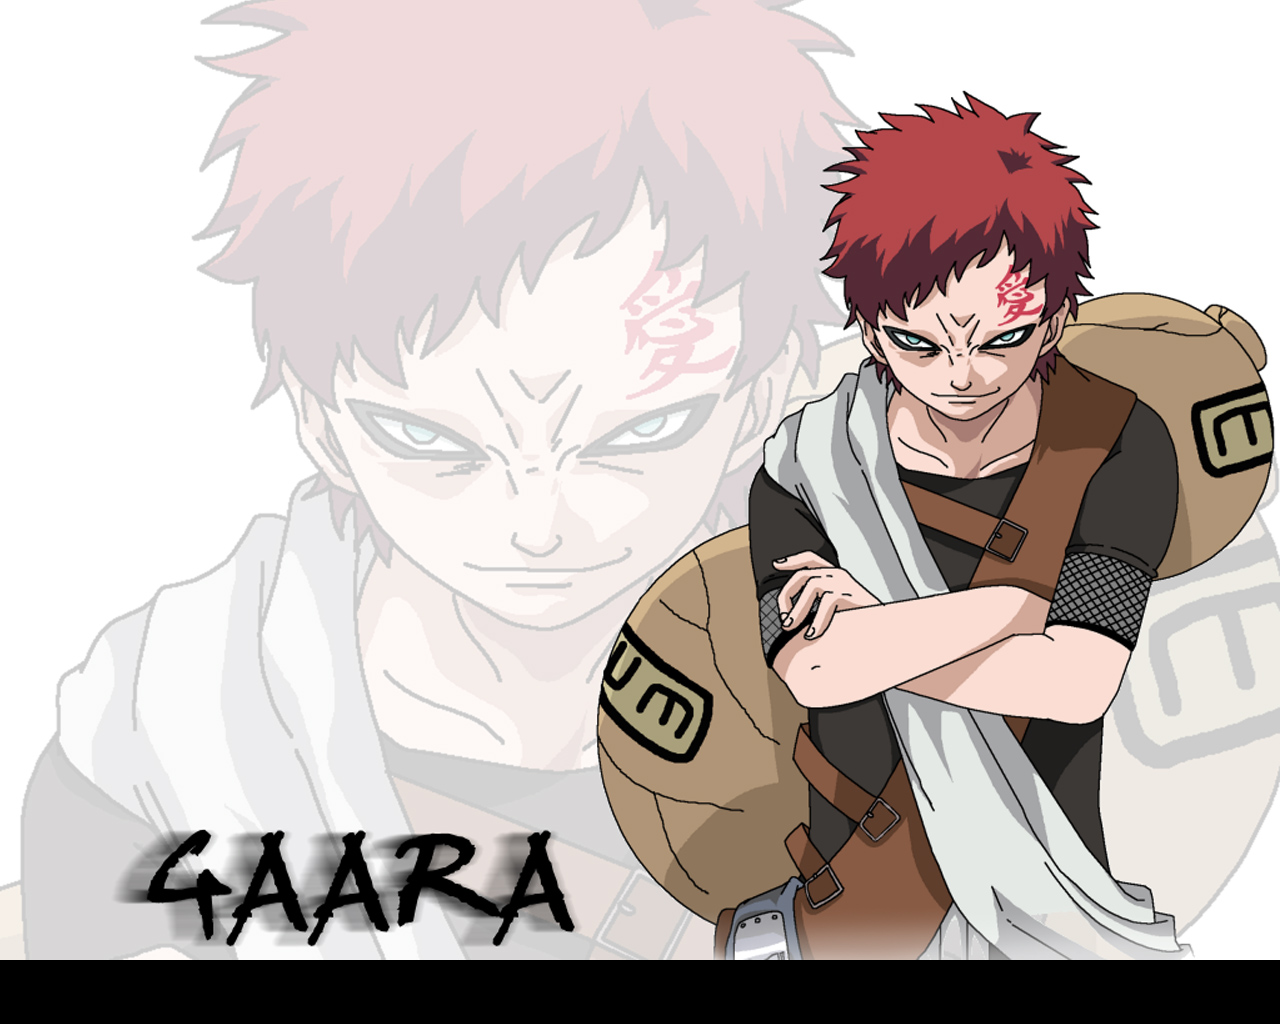 Gaara Of The Desert Wallpaper 12801024 168547 HD Wallpaper Res 1280x1024